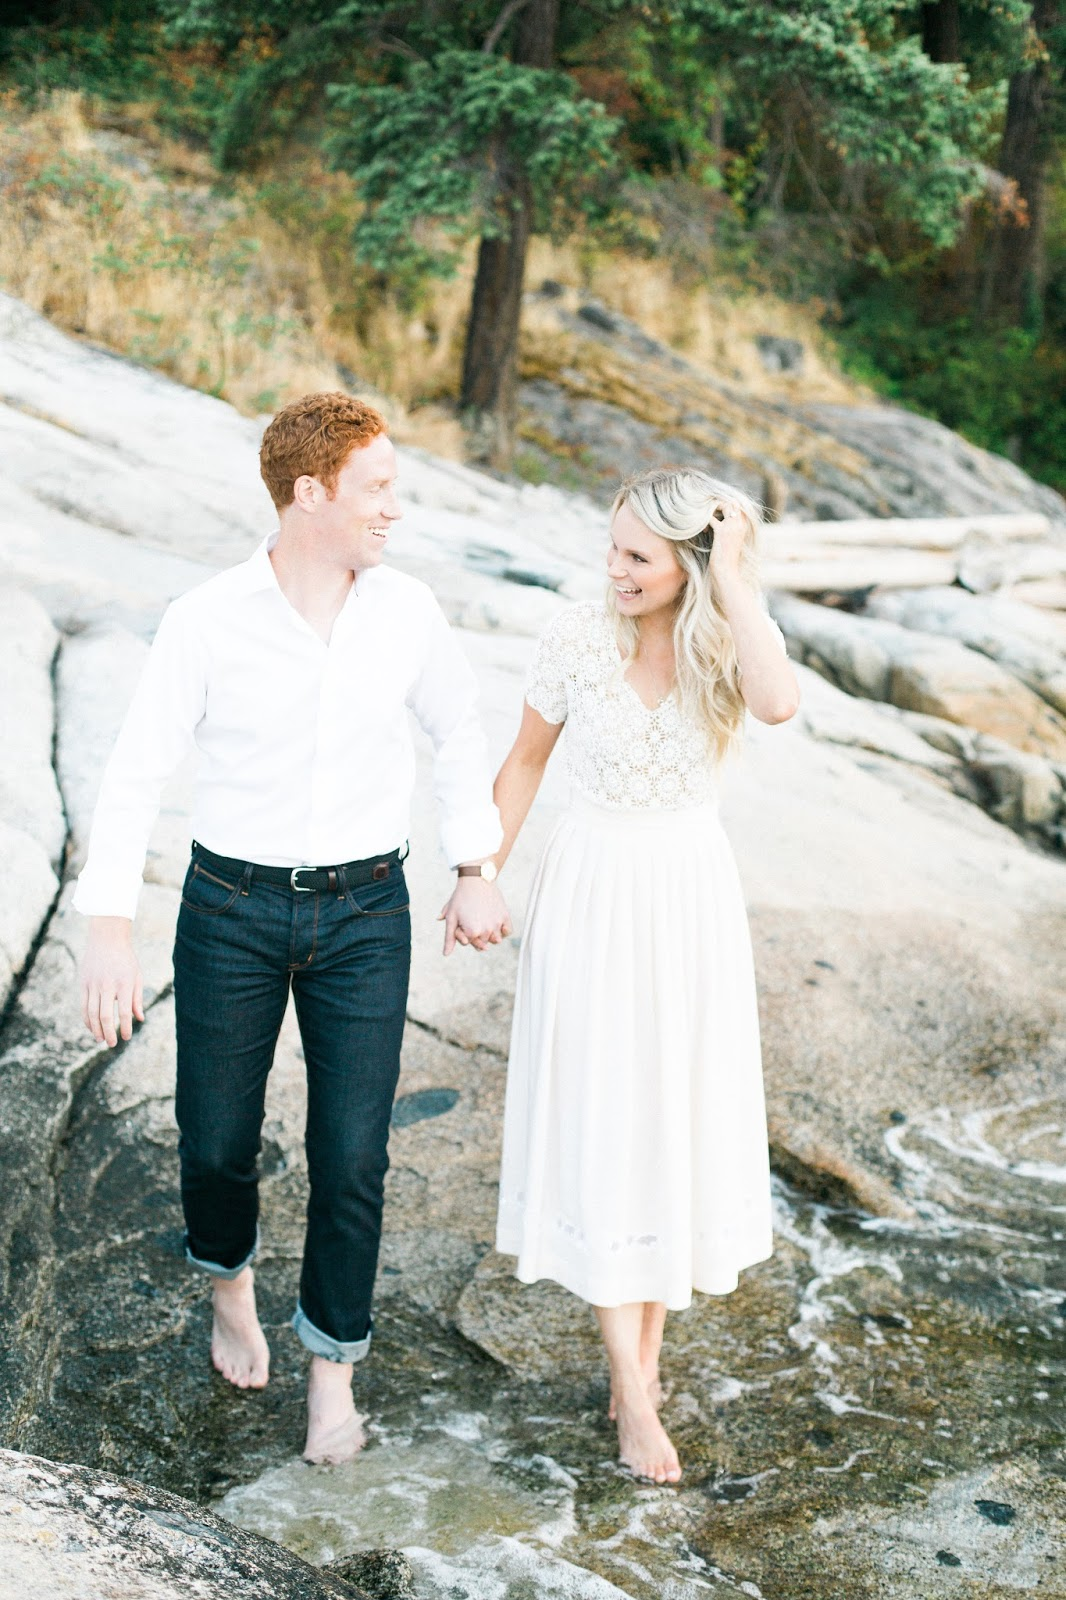 dipping our feet in the water during engagement photos